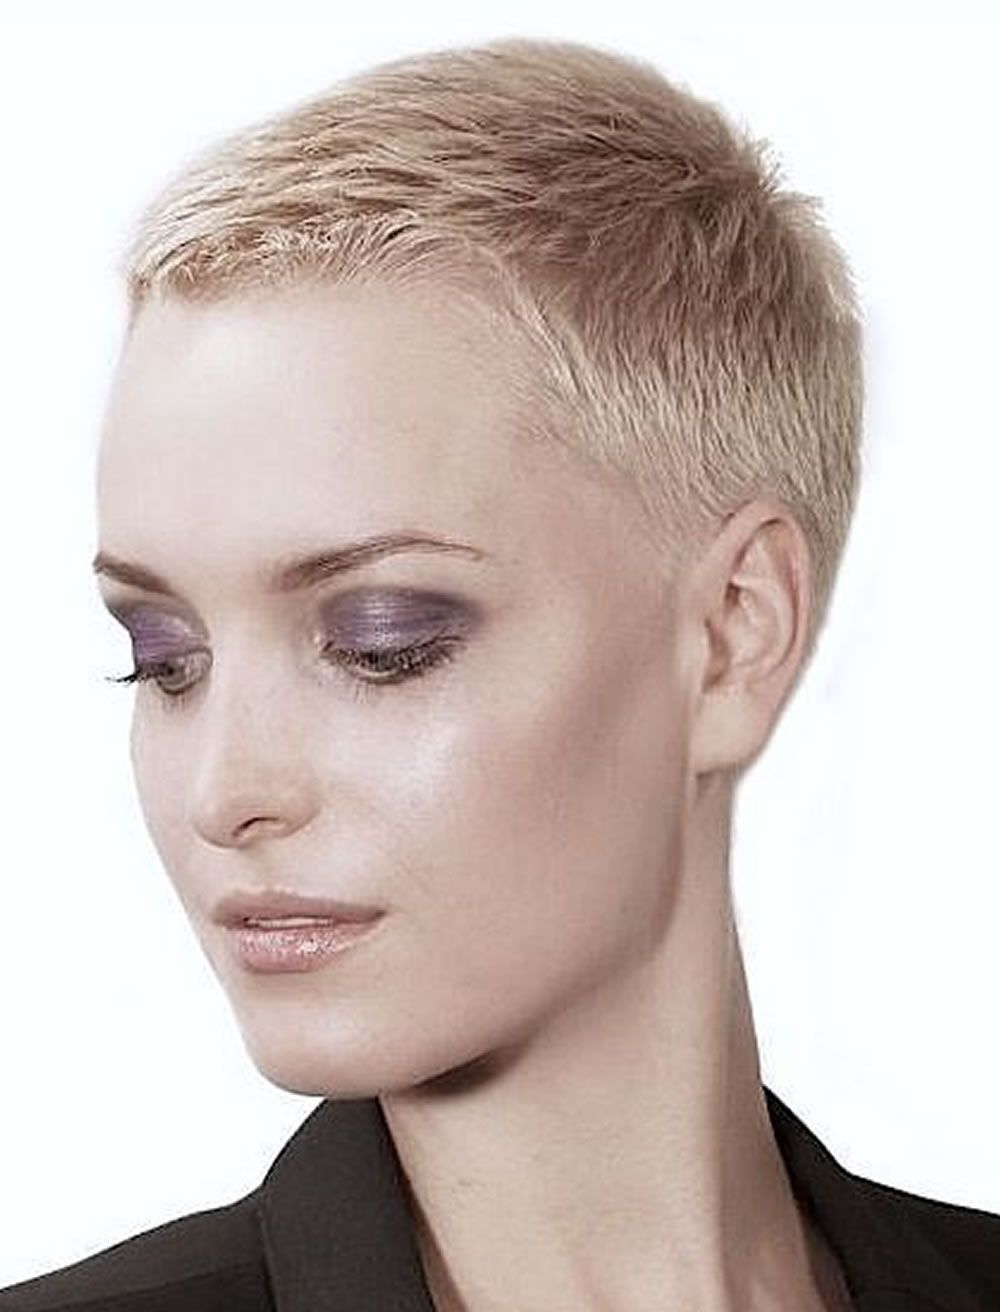 Very Short Pixie Haircut Tutorial Images For Glorious Super Short Haircuts Very Short Haircuts Really Short Hair